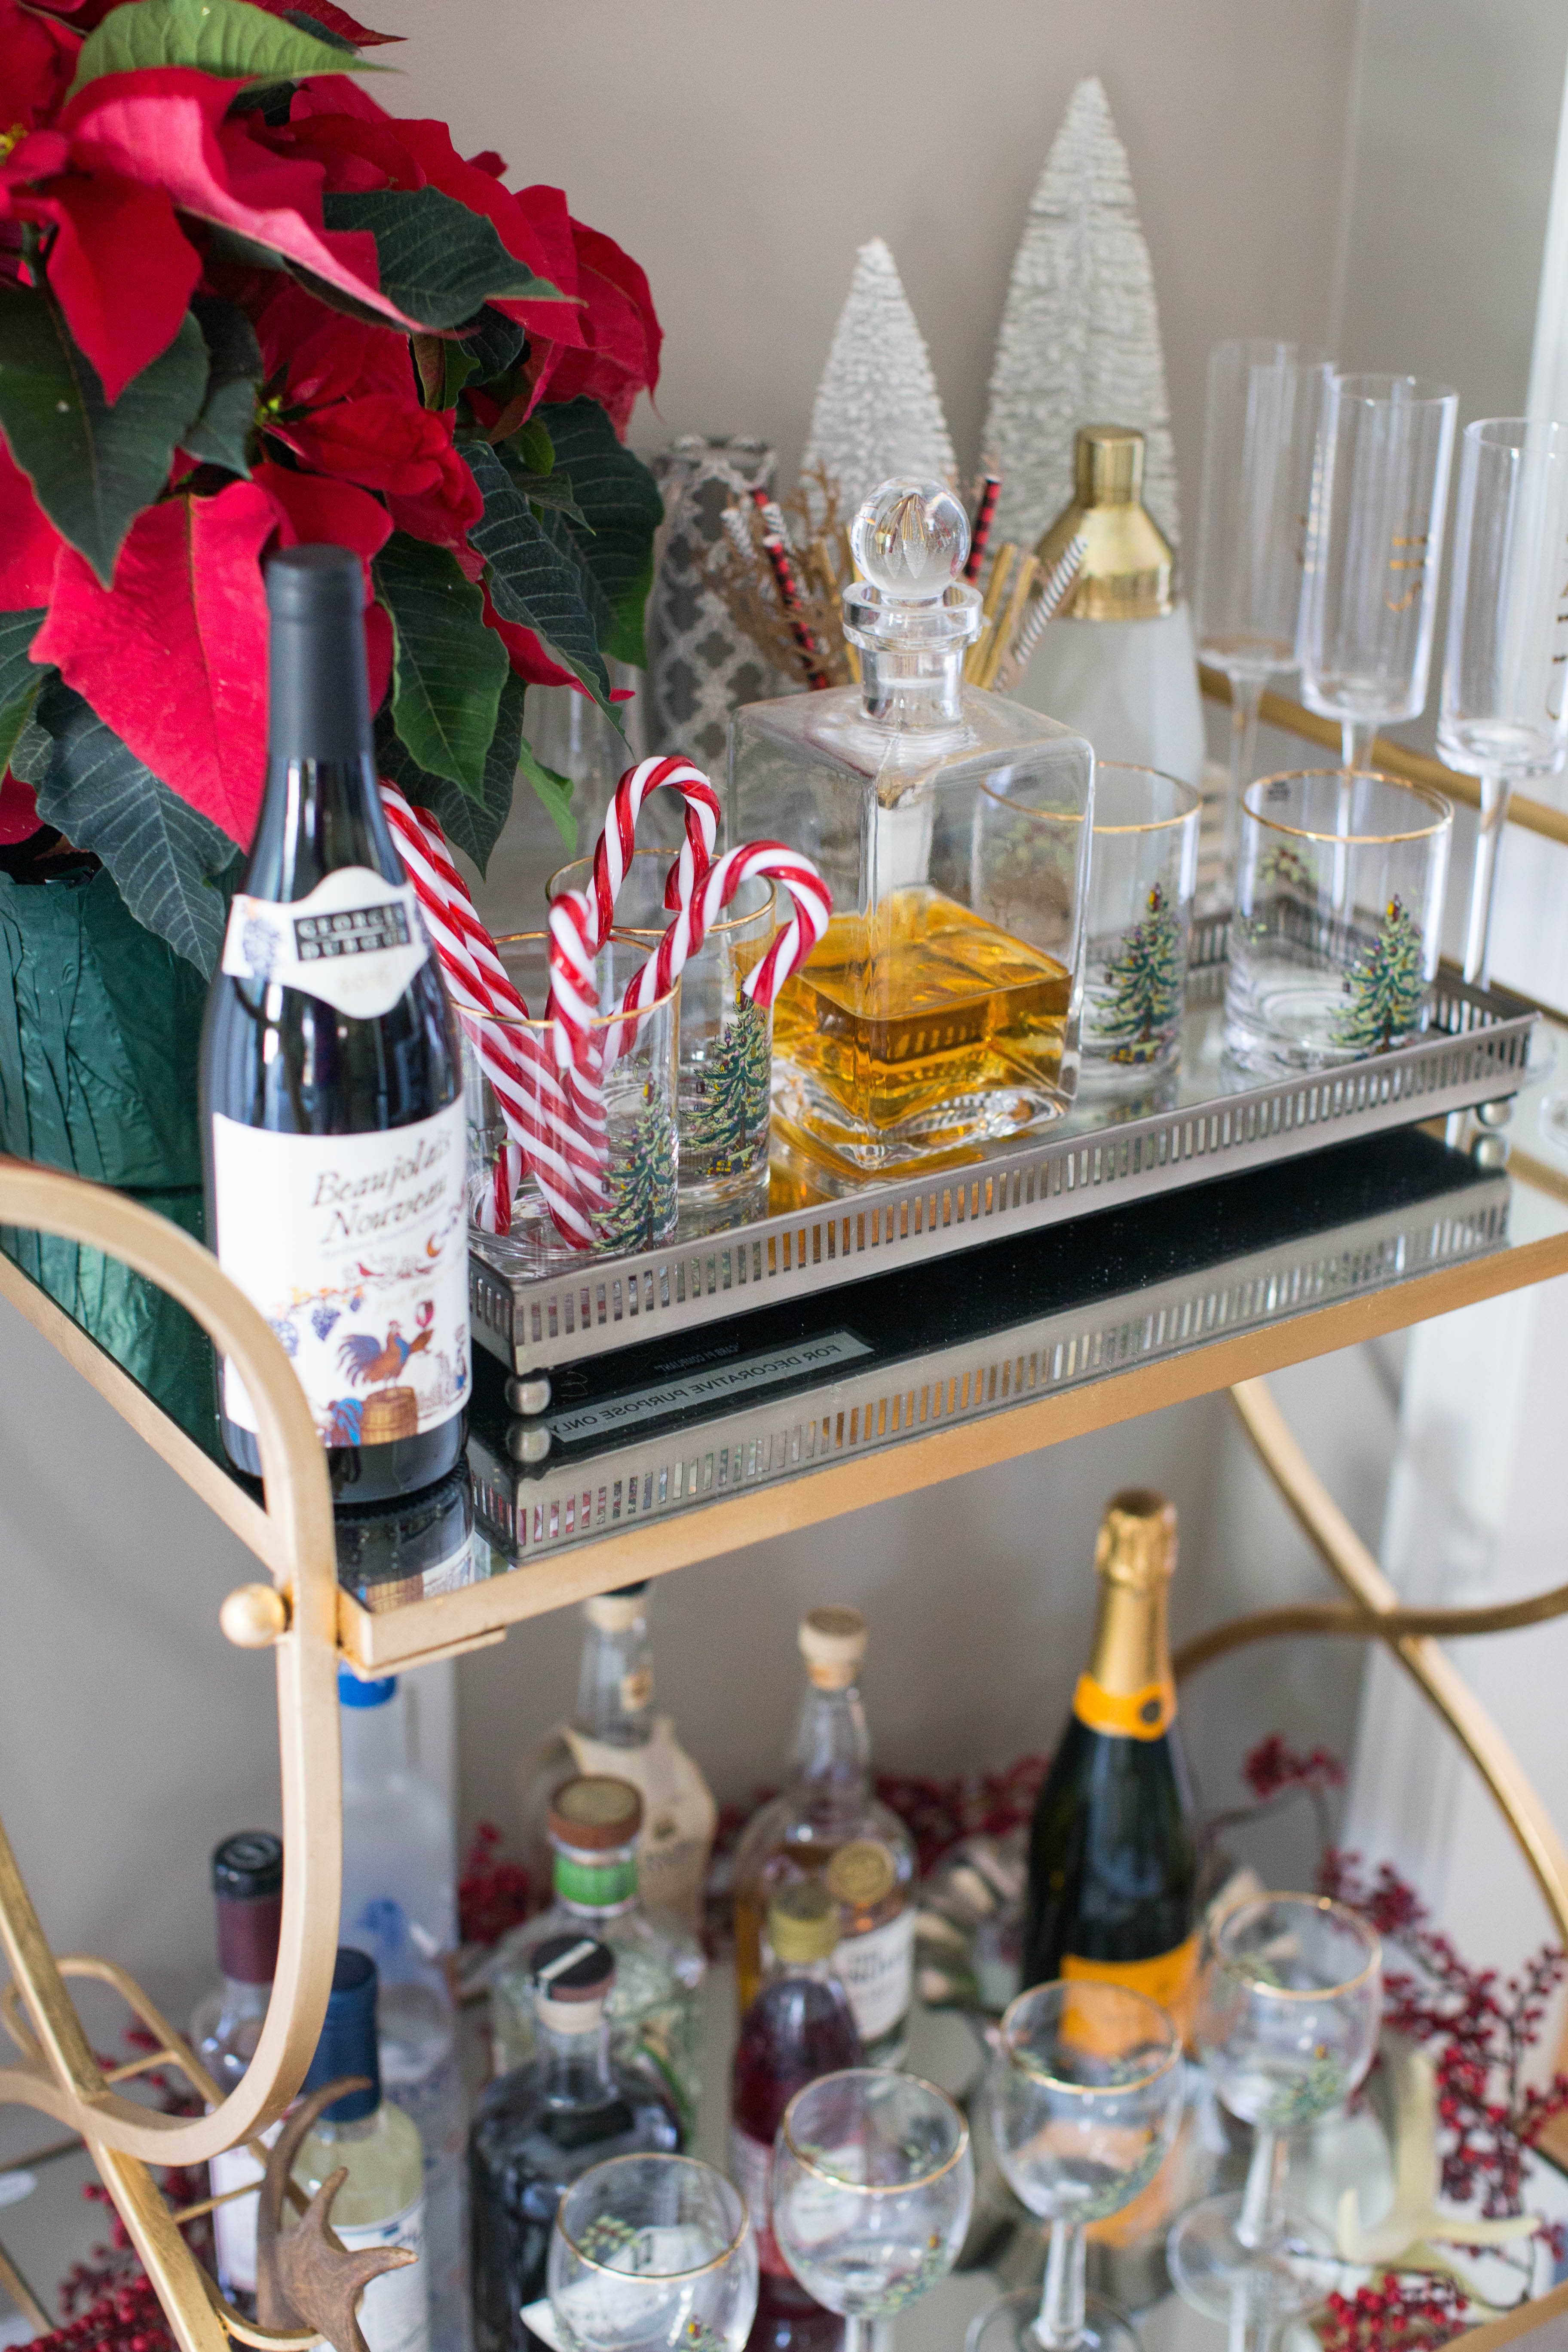 img_3847 - 3 Awesome Holiday Bar Cart Ideas by North Carolina style blogger Coffee Beans and Bobby Pins